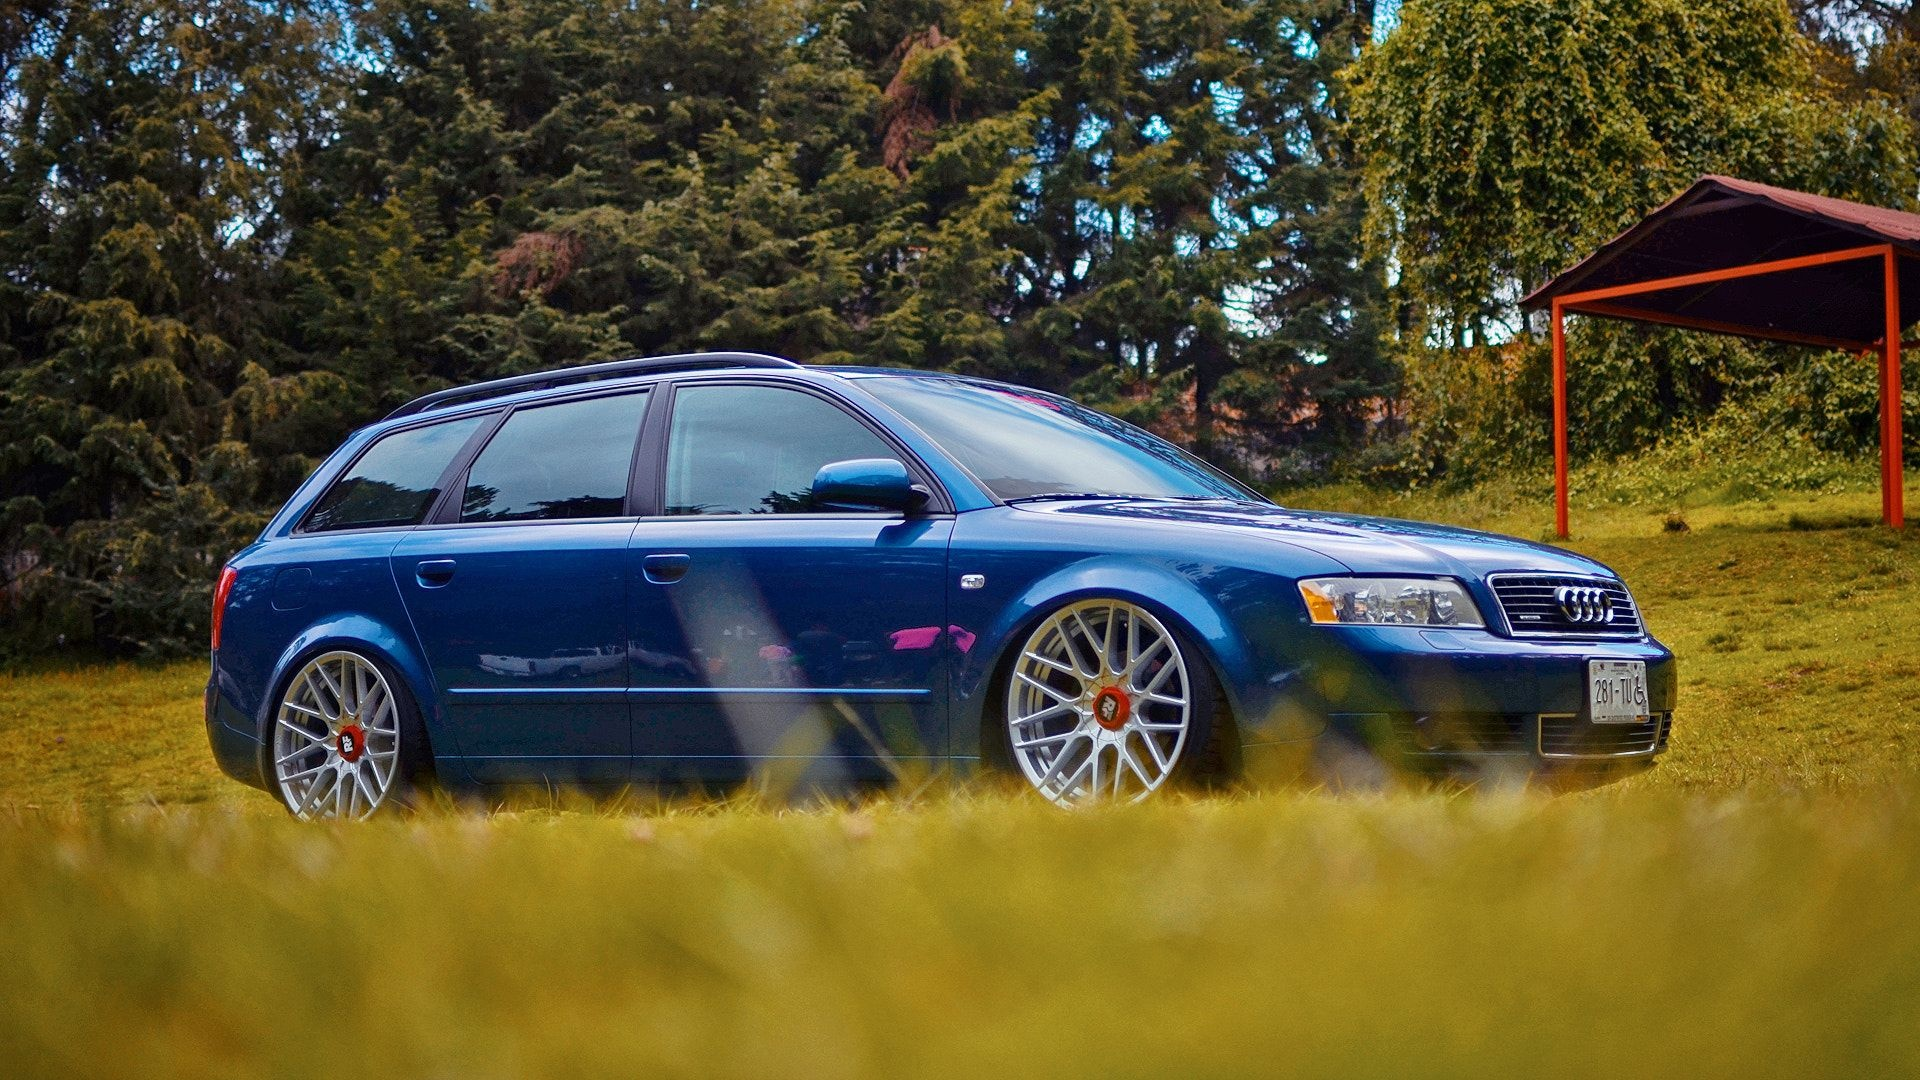 Audi Rs6 Modified Beautiful Audi Avant Amazing Audi Avant Bagged Sittin In Rse Rotiforms-1303 Of Inspirational Audi Rs6 Modified